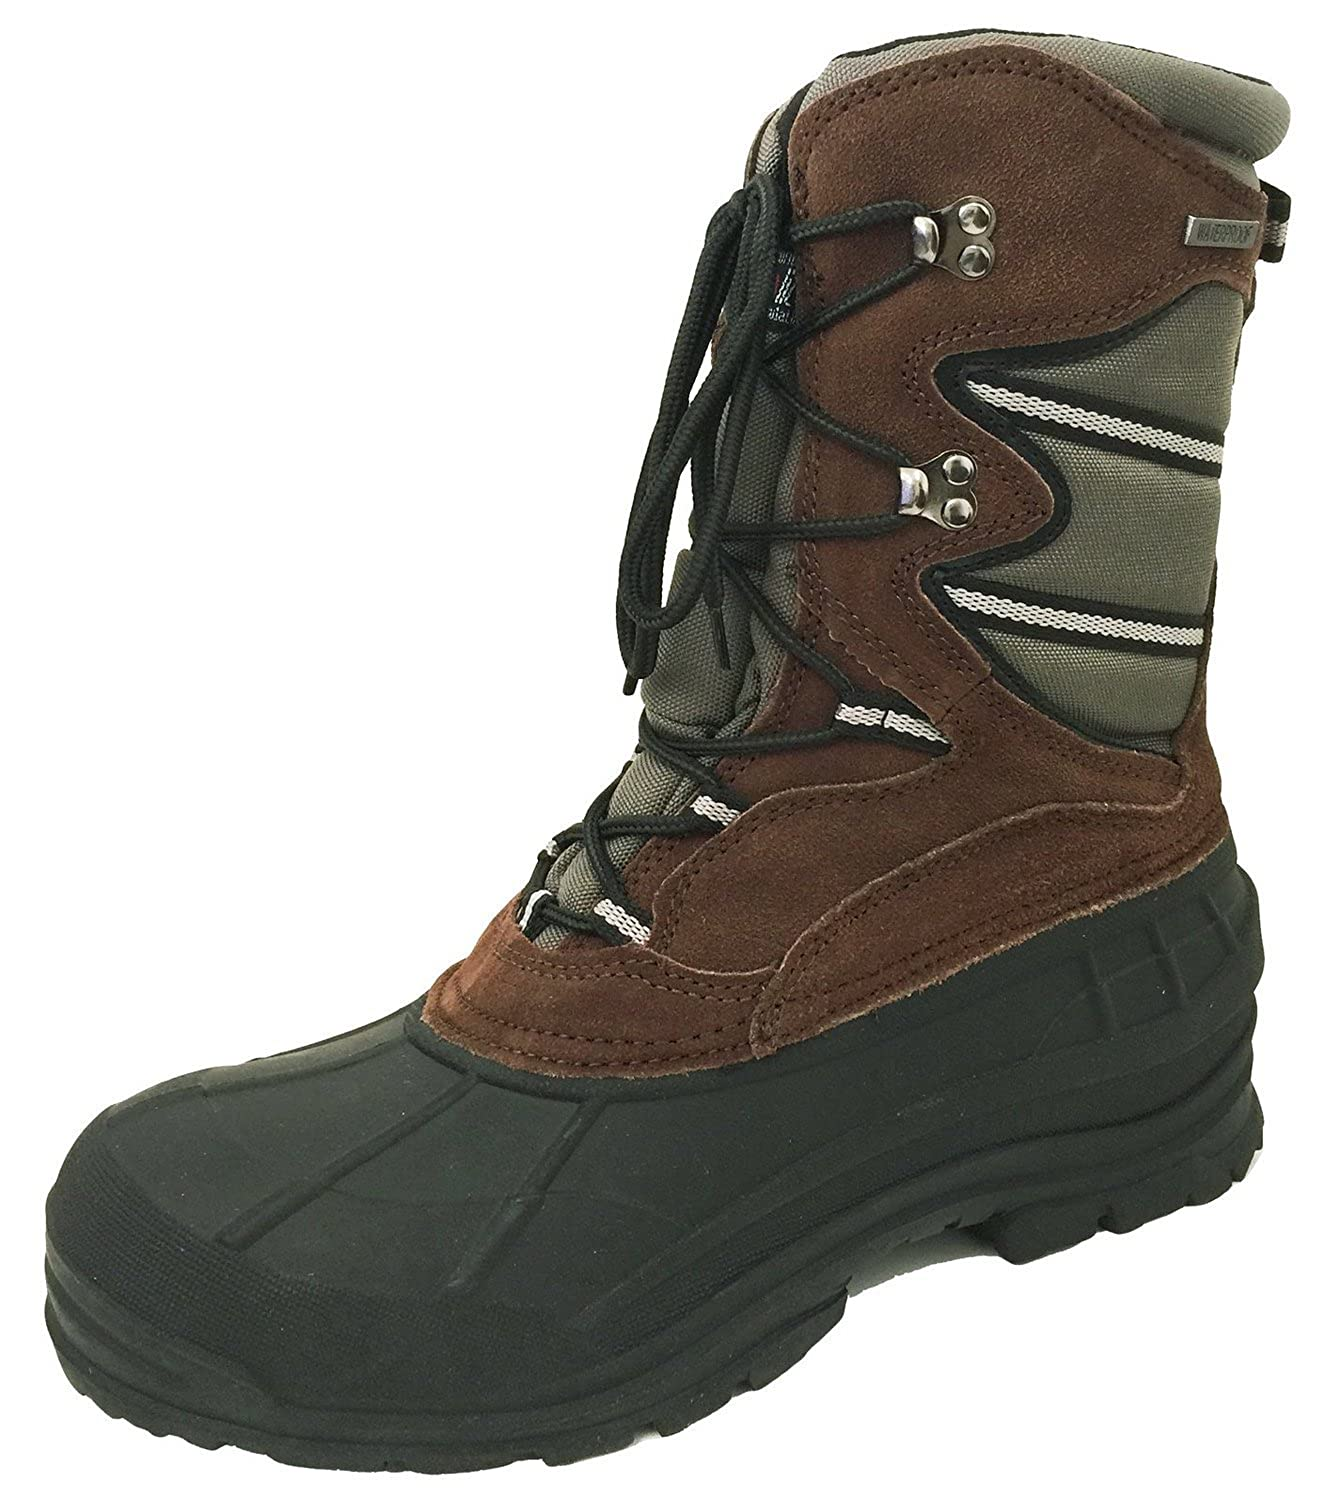 "A09SB Men's Winter Boots Hiking 10"" Cold Weather Waterproof Leather & Nylon Thermolite Insulated Warm Snow Hunting Work Shoes"